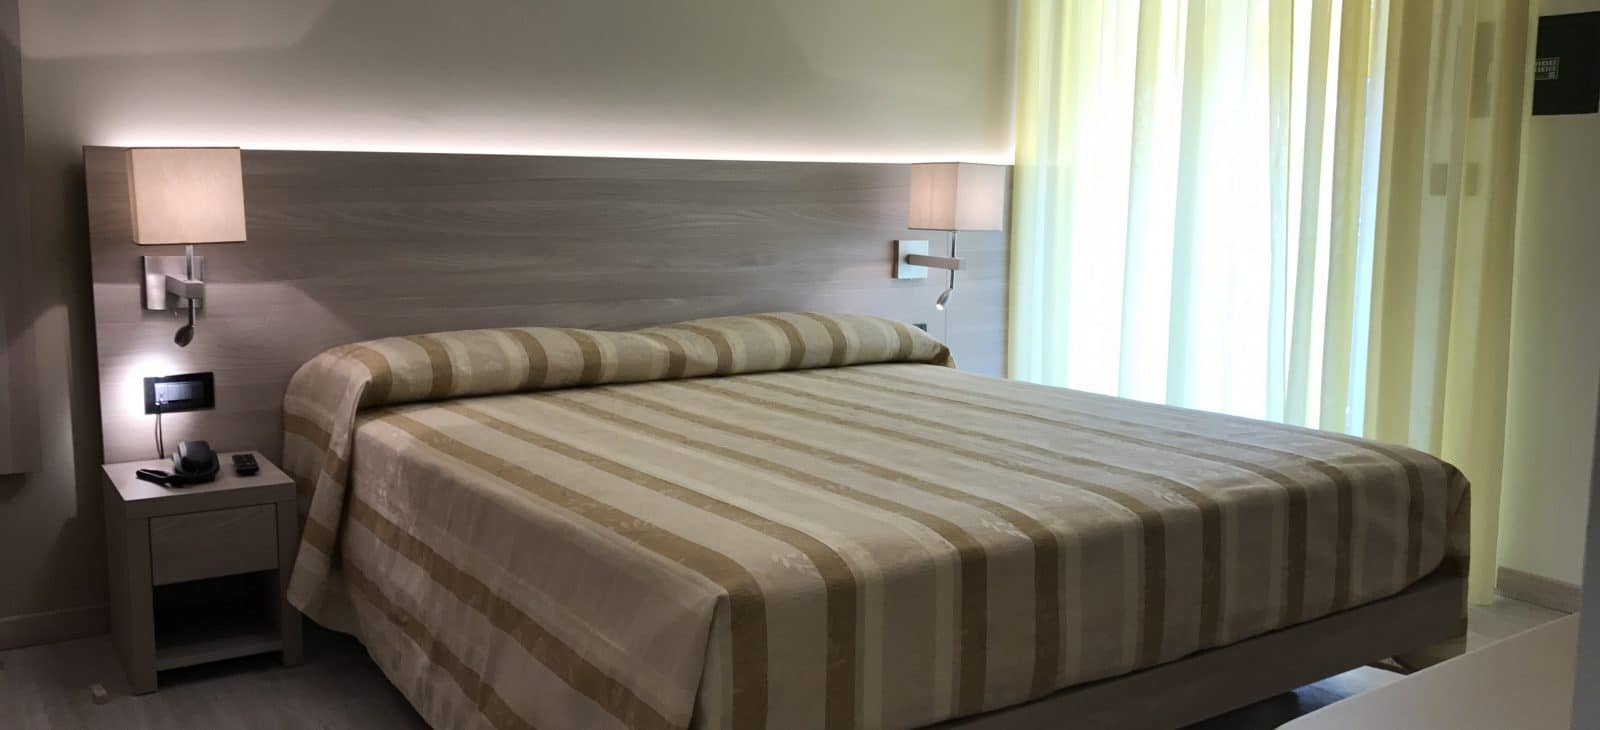 Hotel Angelo-hotel 3 stelle caorle-SITO UFFICIALE